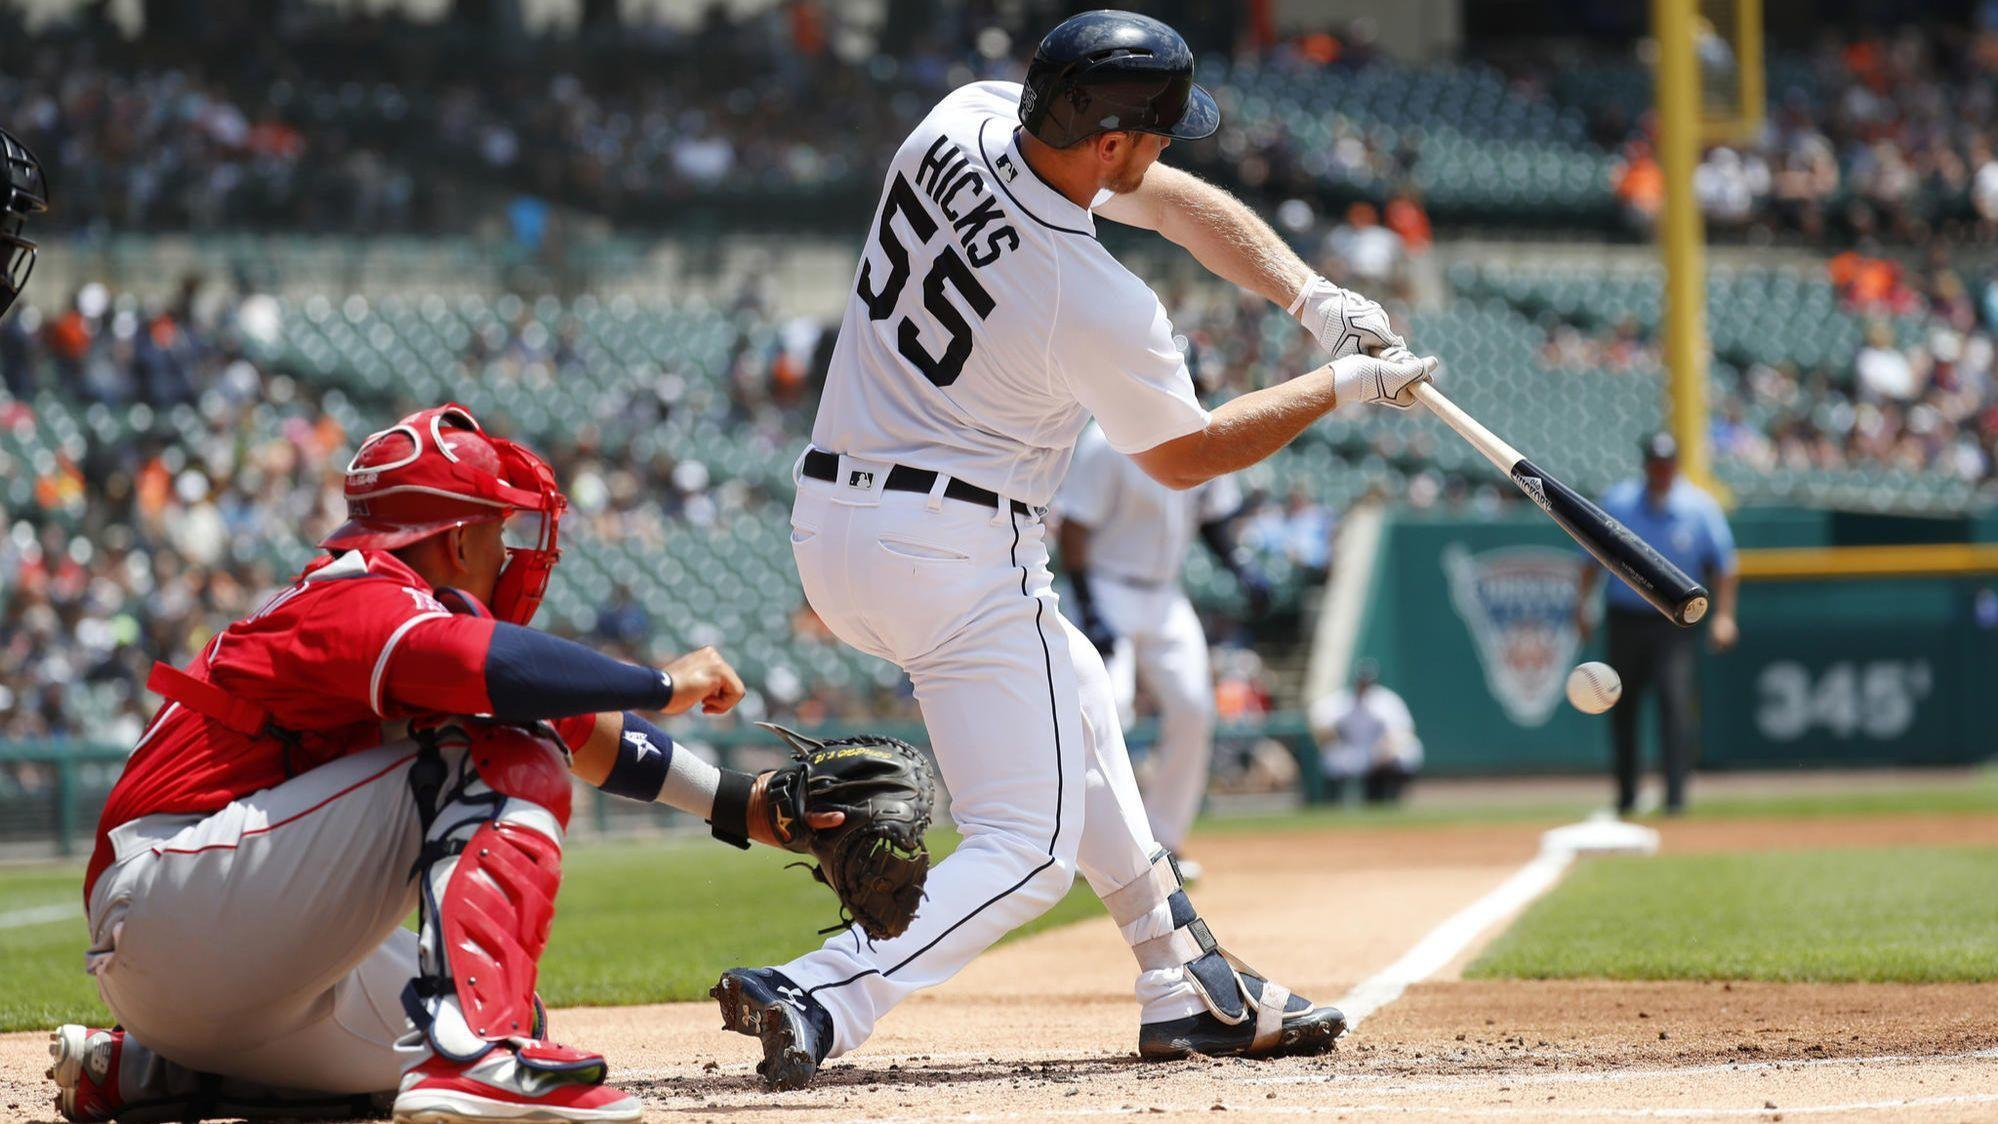 Heaney knocked around as Tigers score early to beat the Angels 6-2